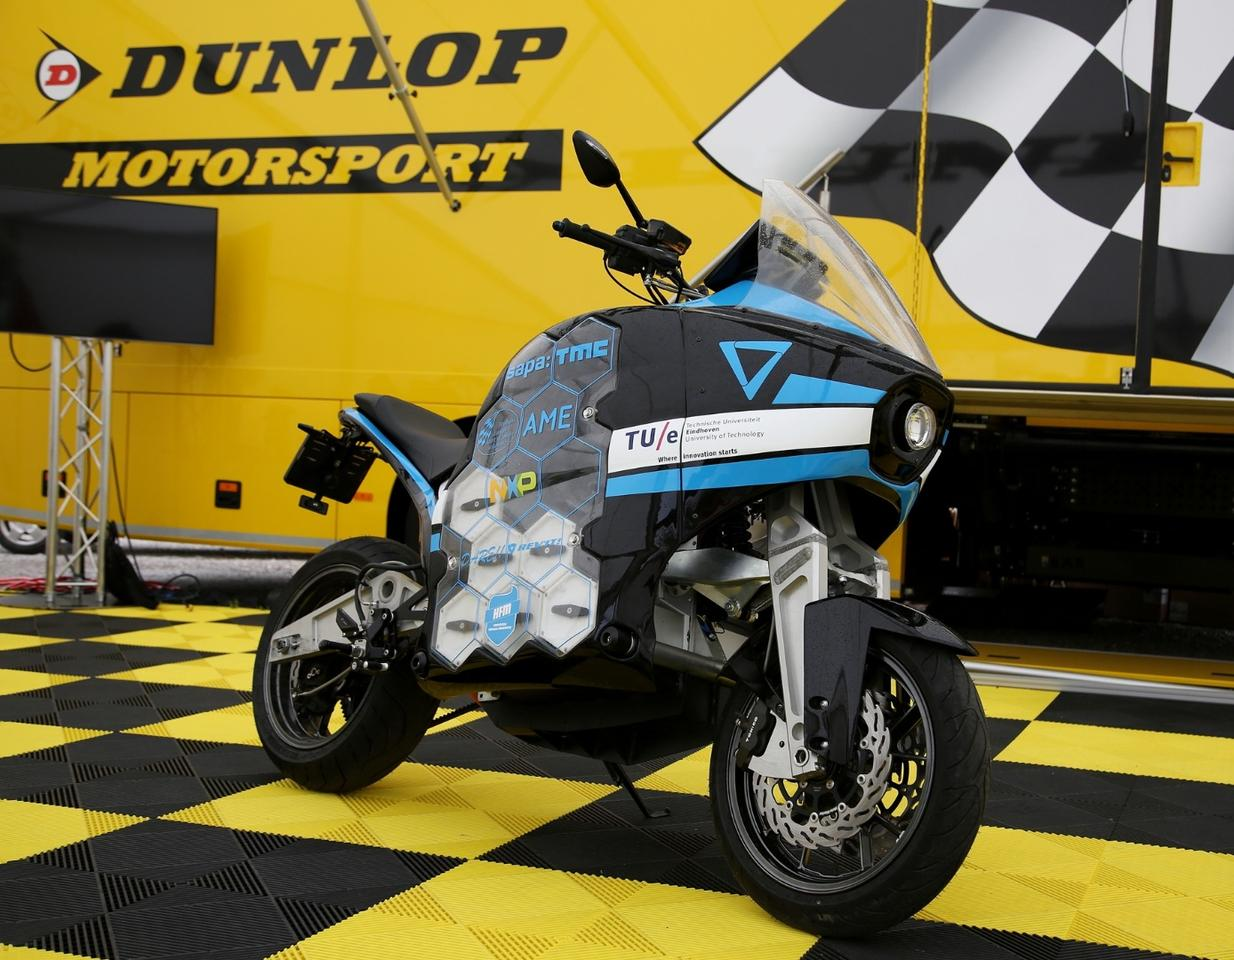 The bikes arefitted especially with Dunlop RoadSmart III tires